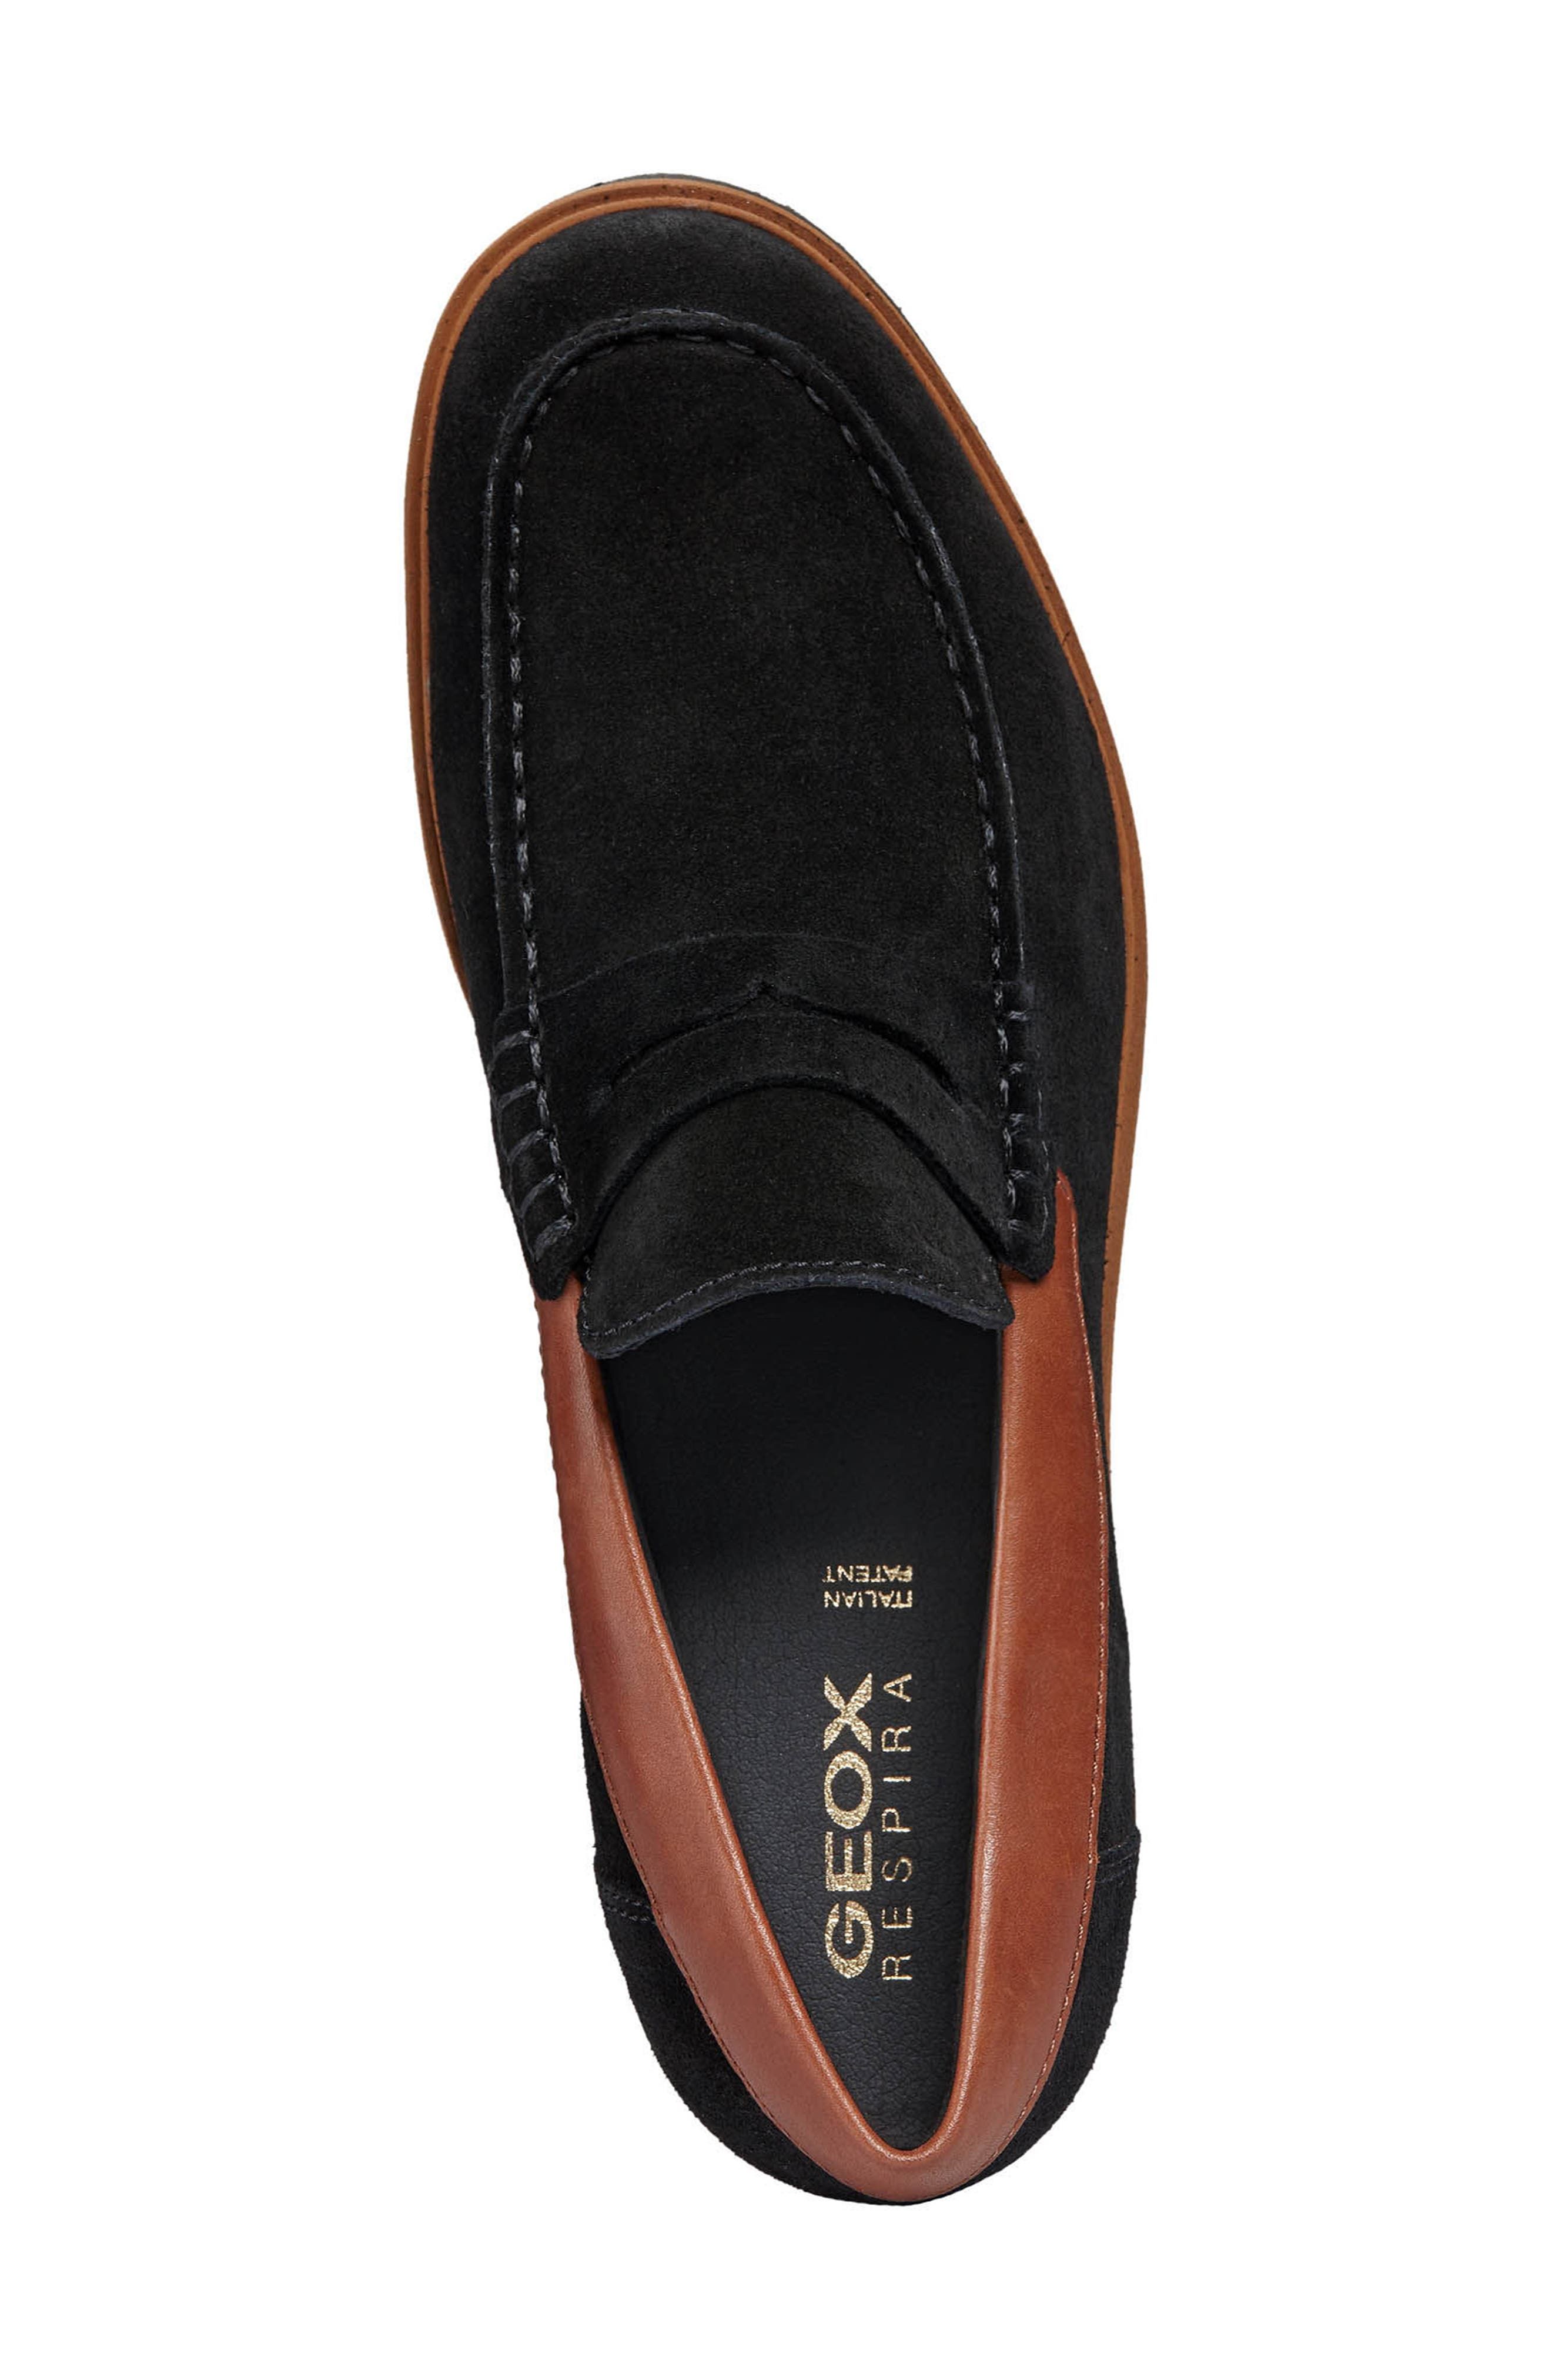 New Pluges 6 Penny Loafer,                             Alternate thumbnail 5, color,                             BLACK/ BROWN LEATHER